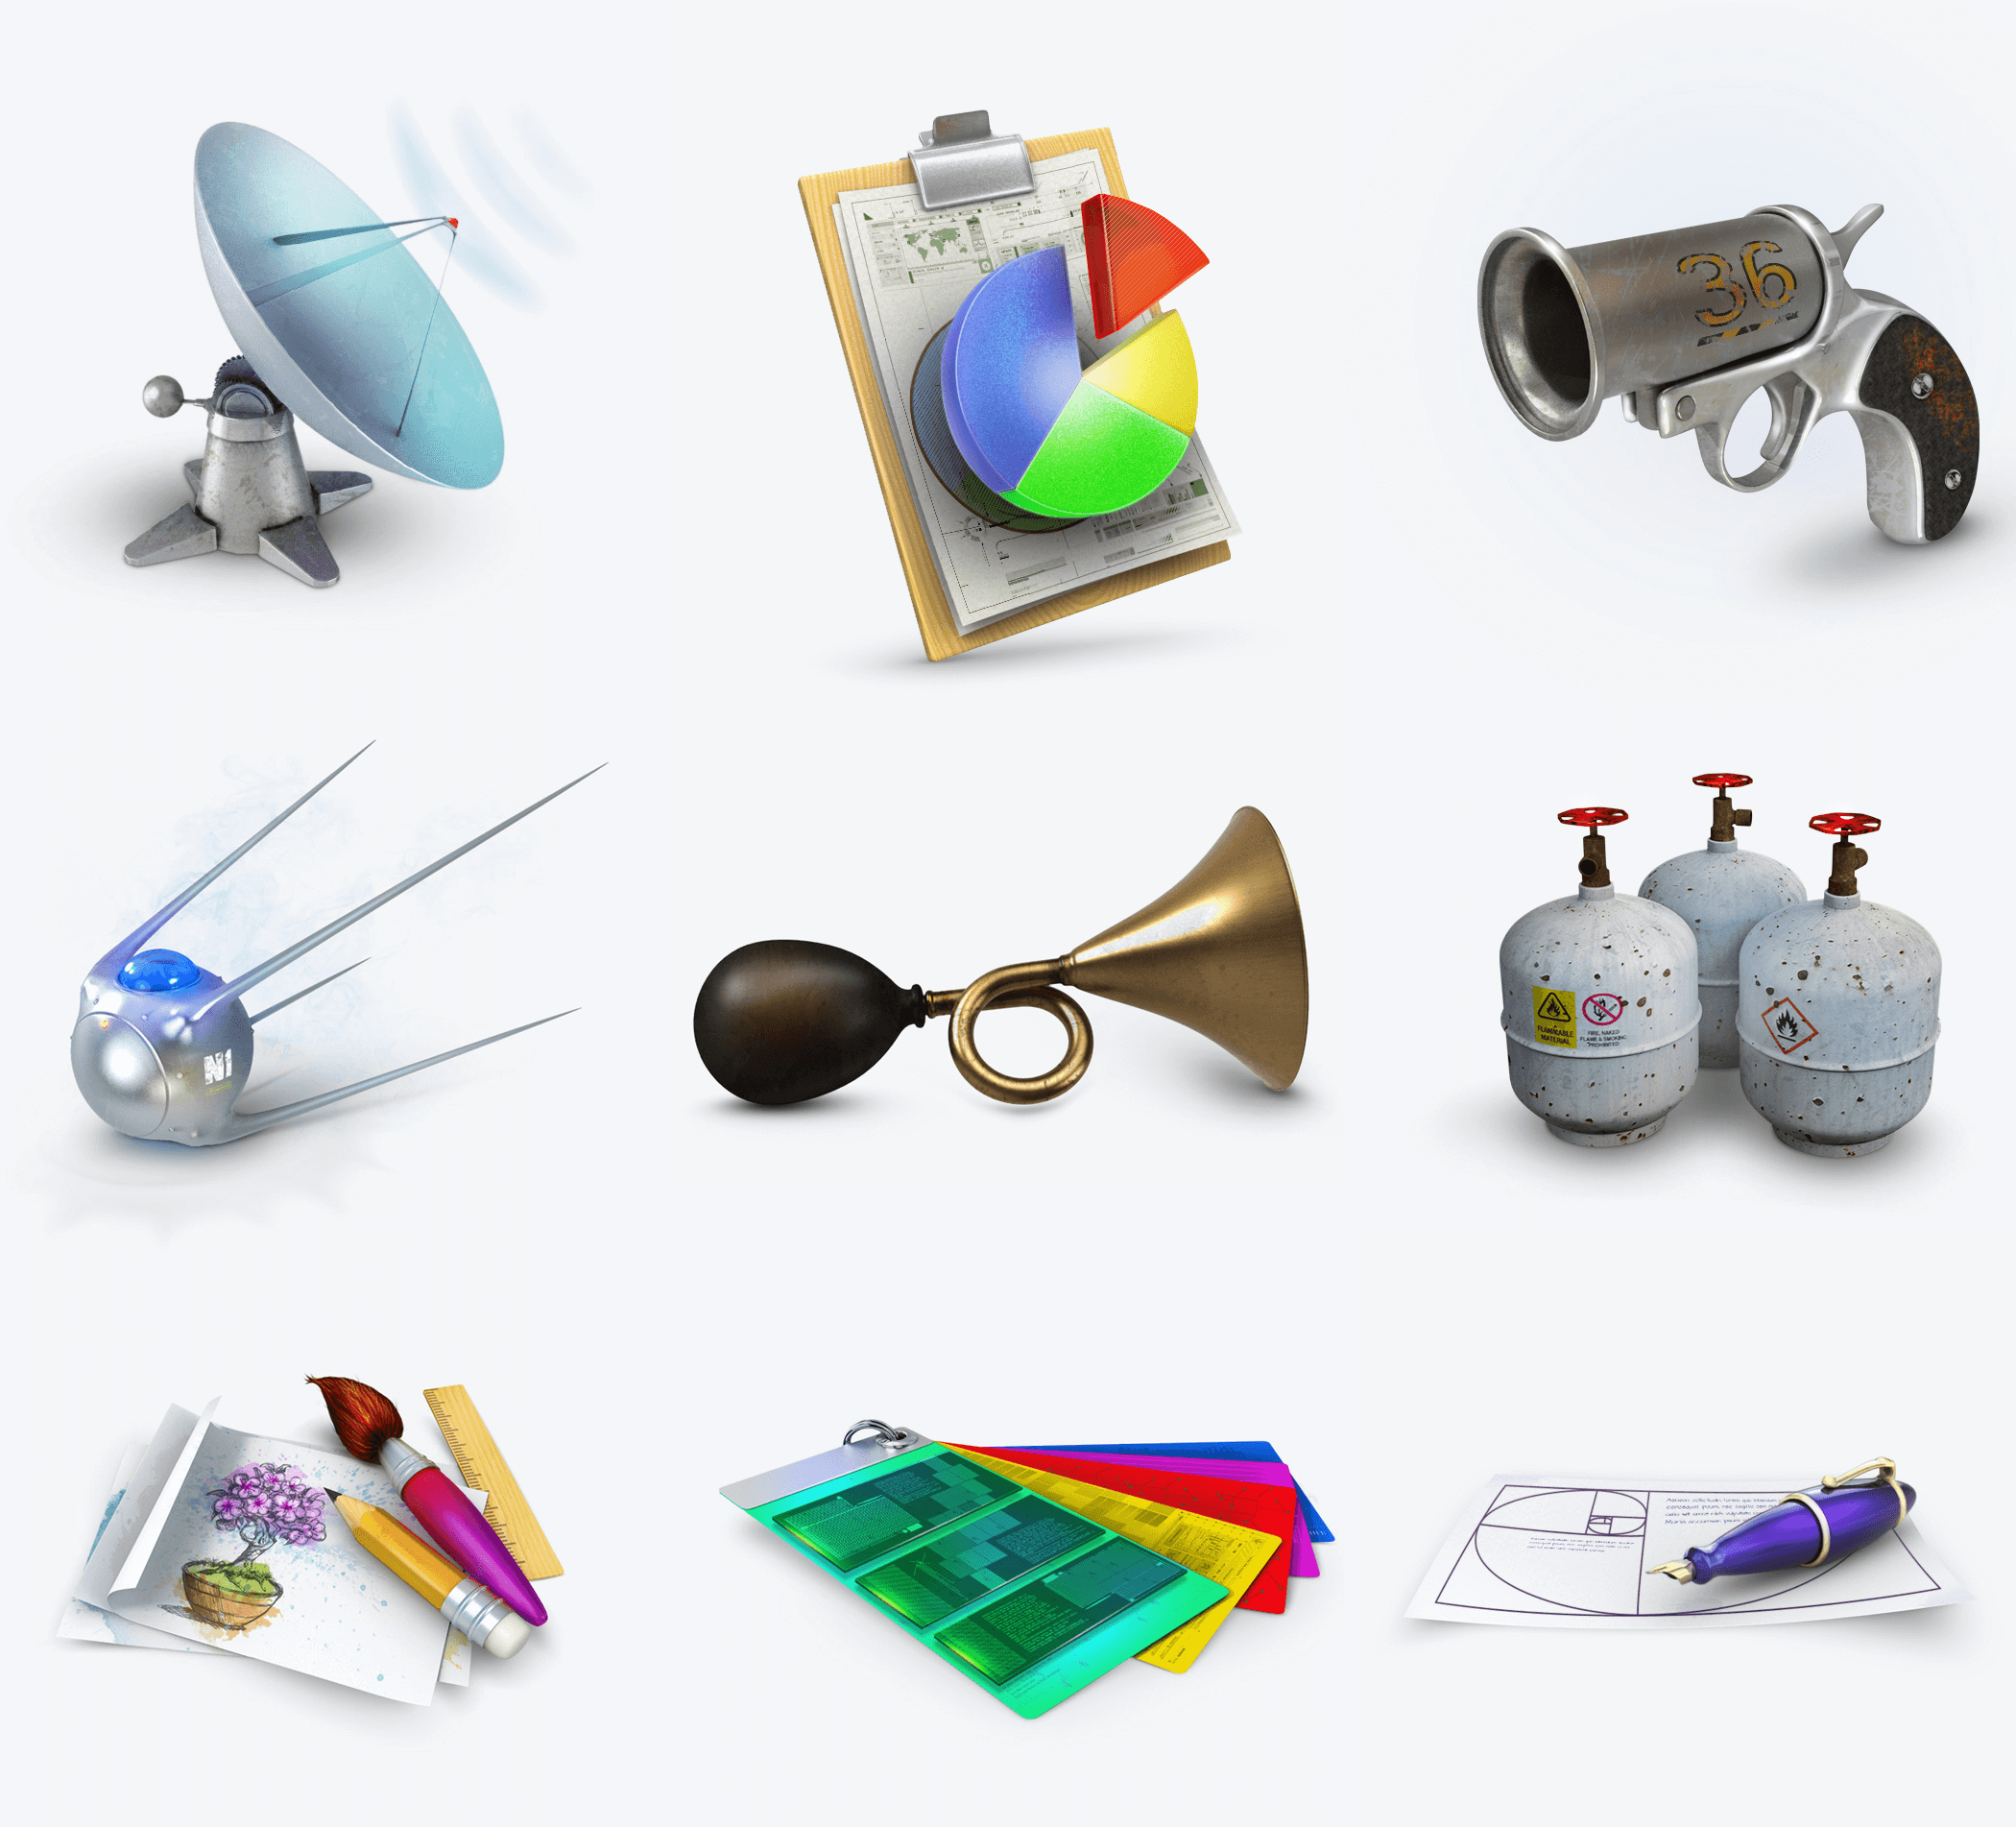 3D icons for presentations, games, education applications